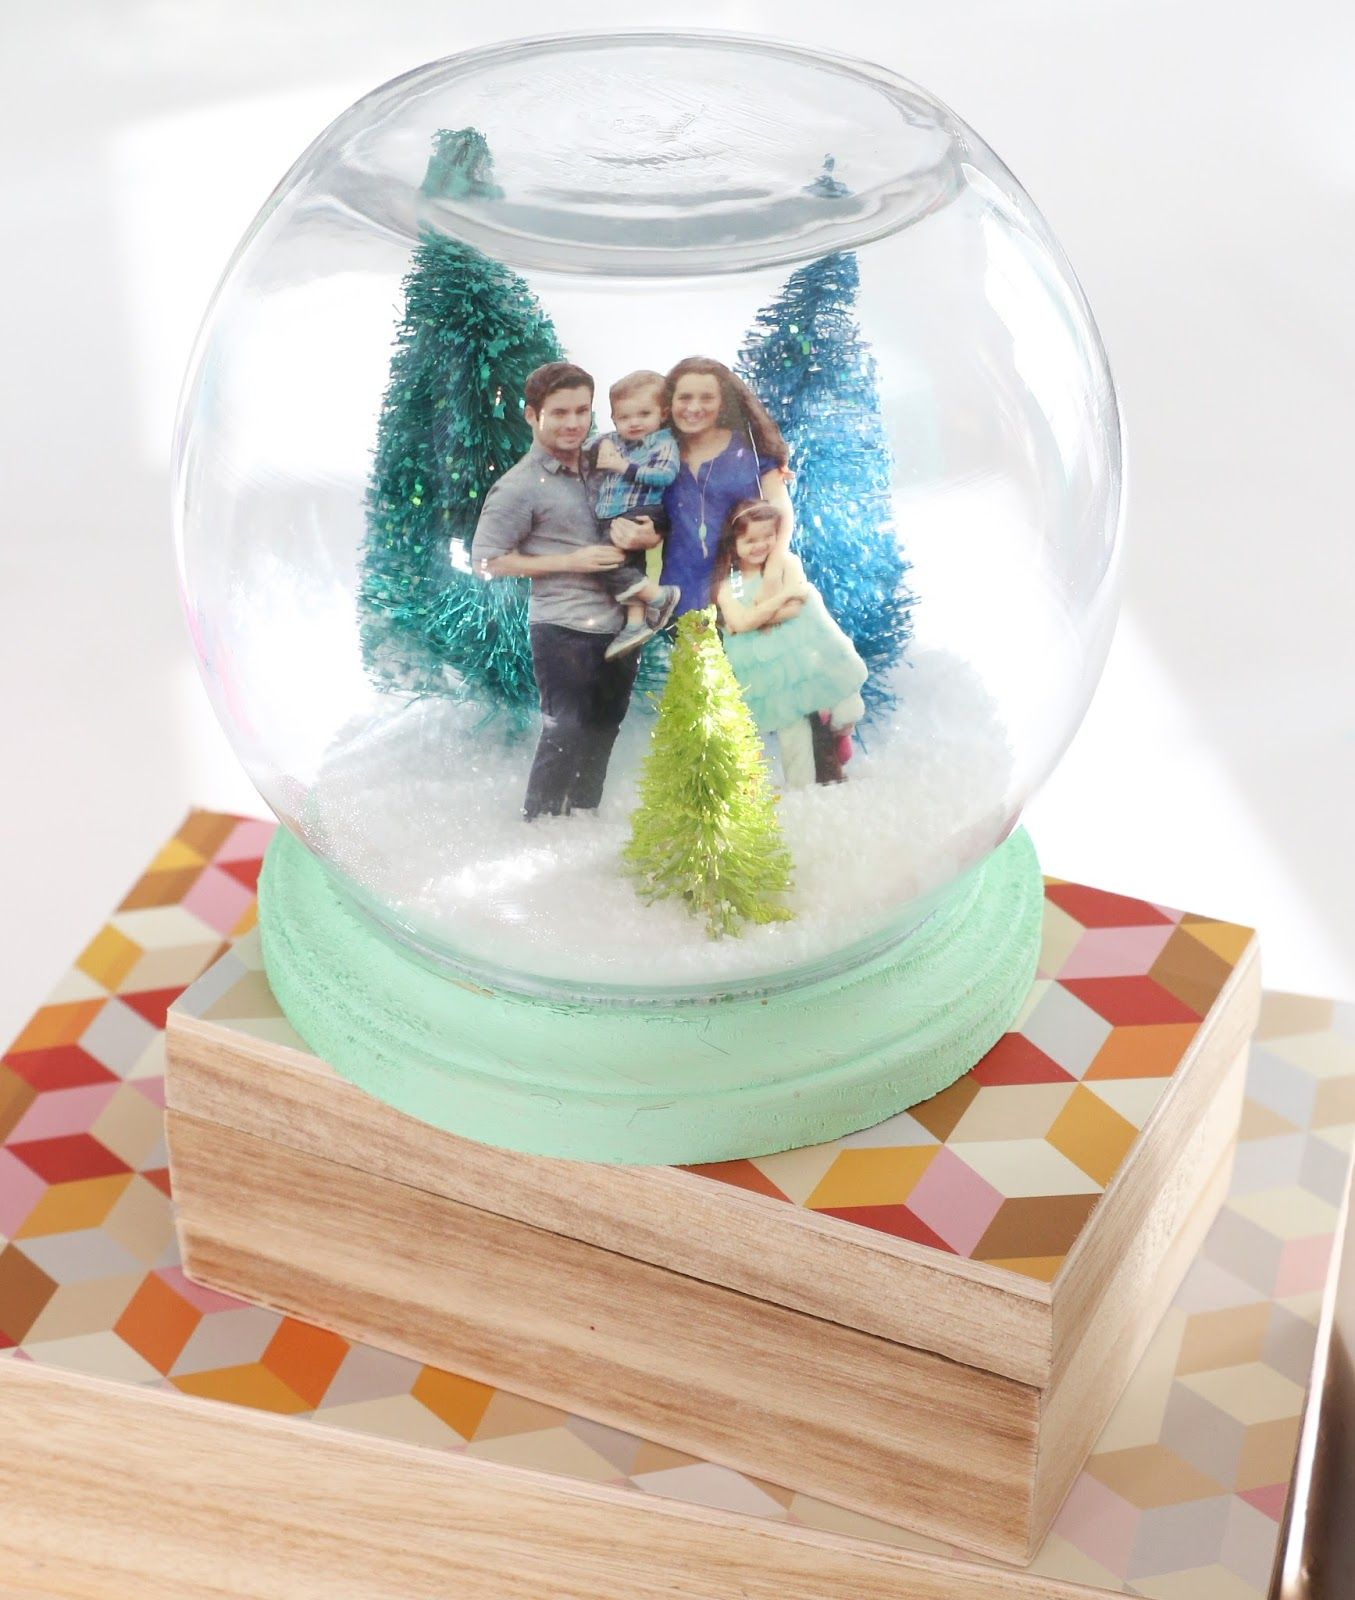 craft it a family portrait snow globe schneekugeln selber machen pinterest schneekugel. Black Bedroom Furniture Sets. Home Design Ideas